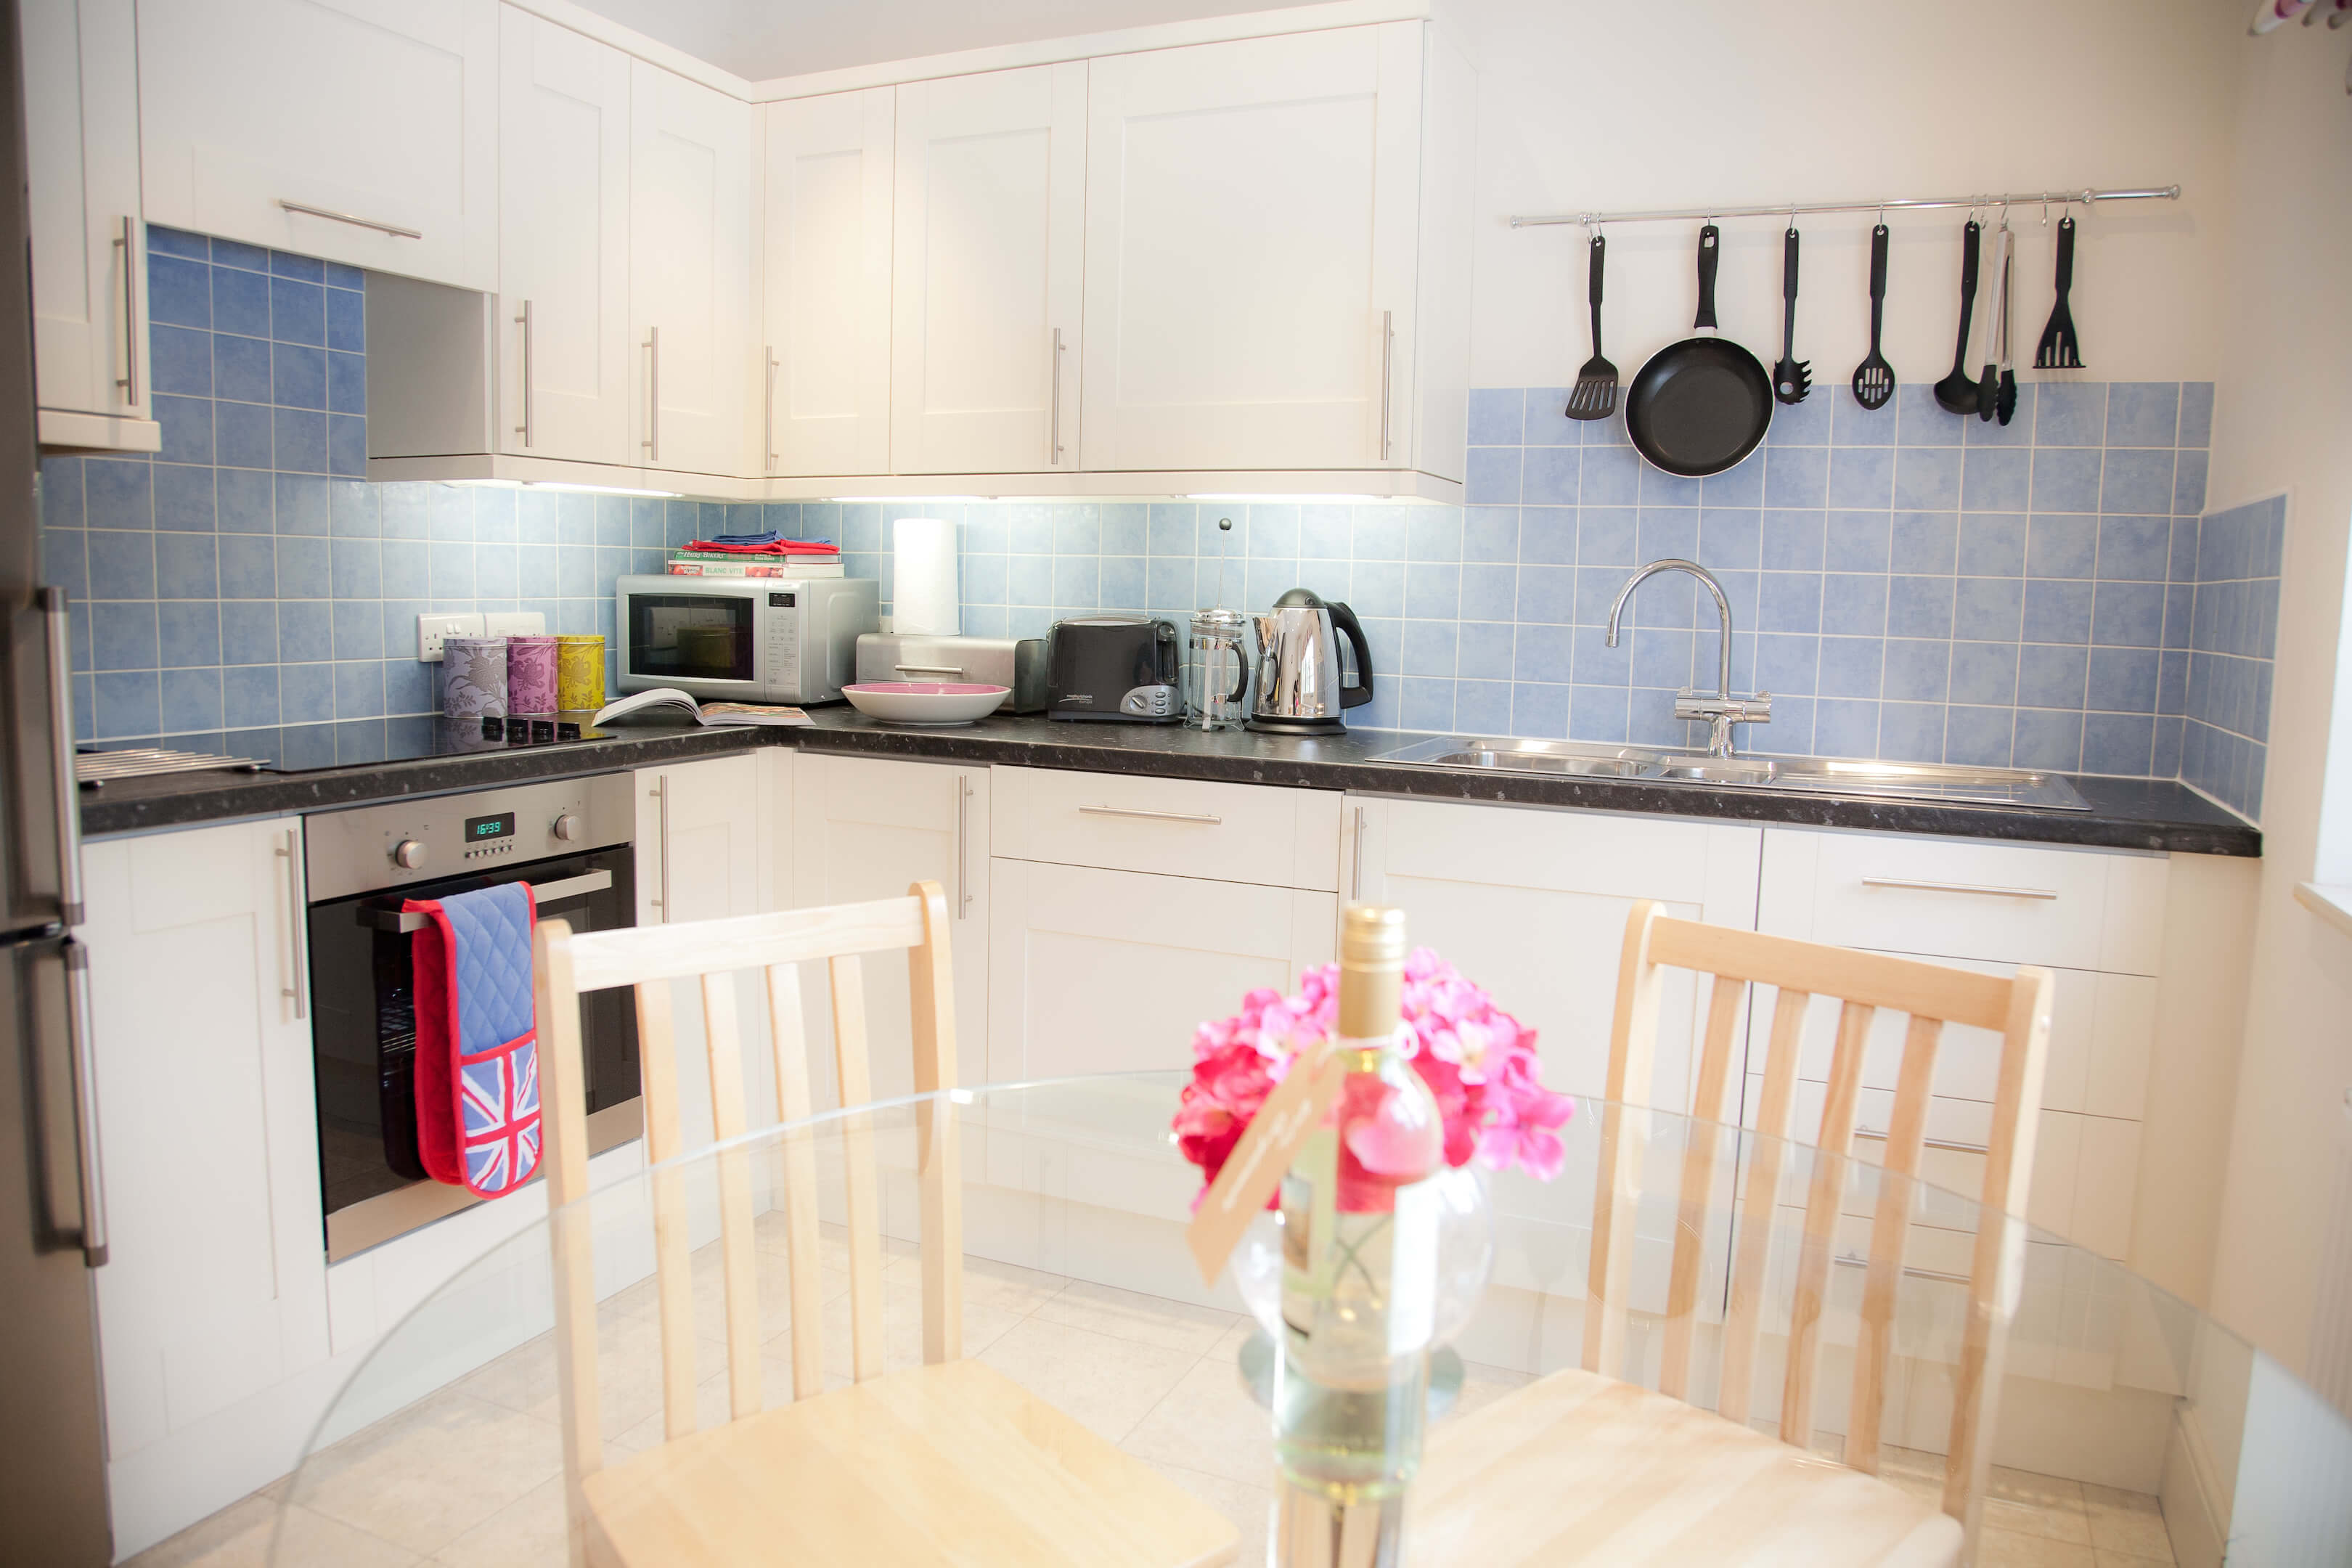 Oxford Shortlet Self Catering Apartment Doubleroom Beech Cottage 28